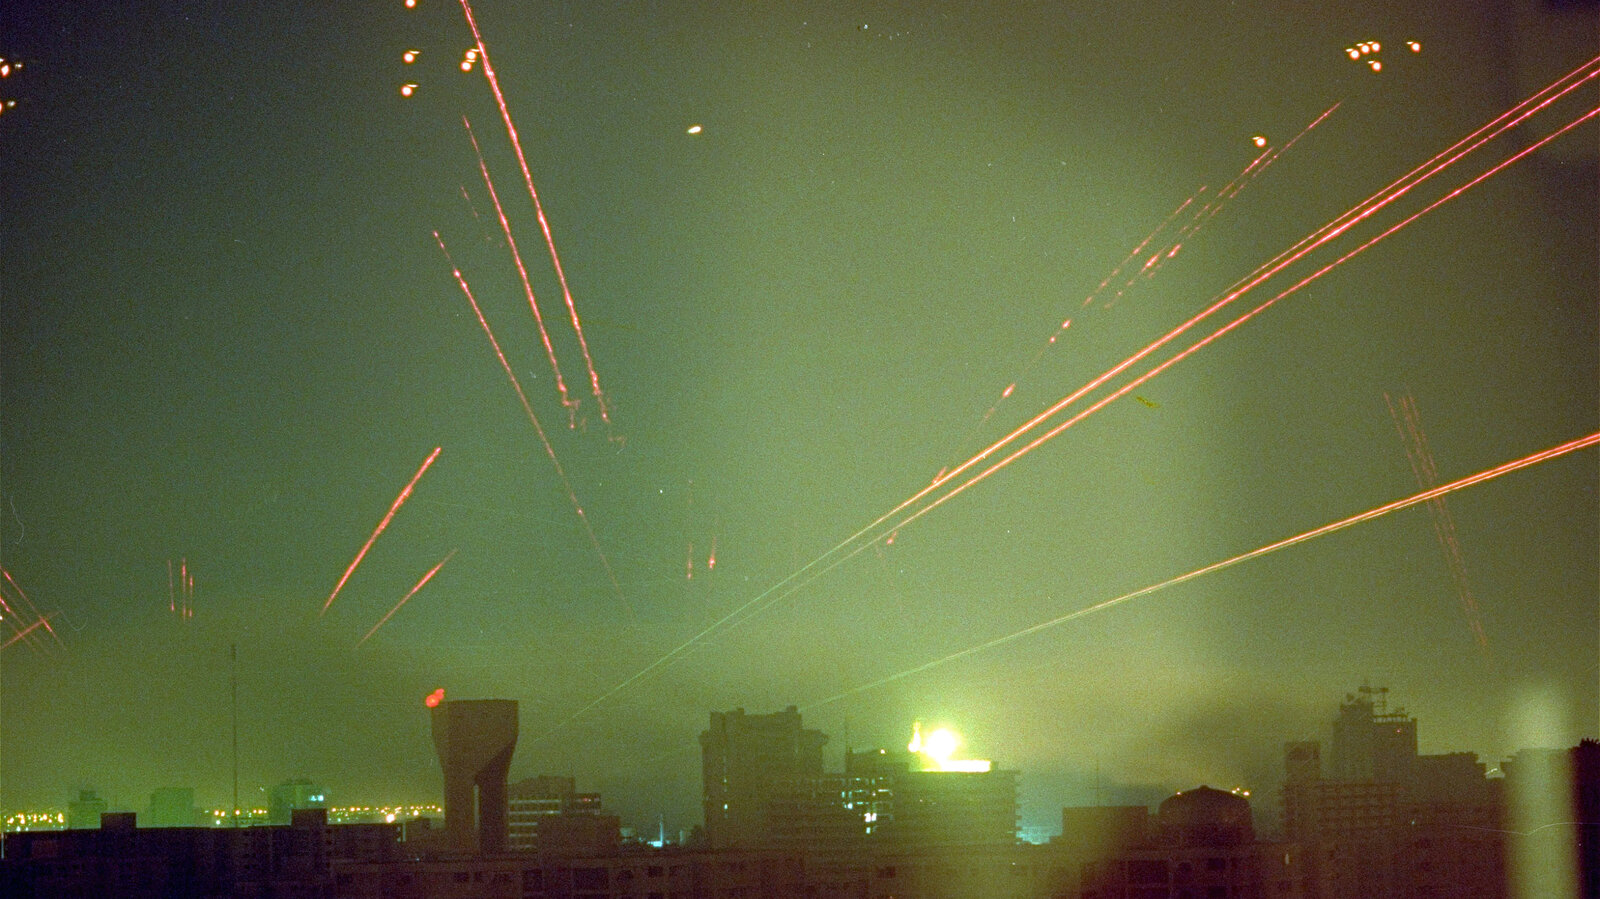 Iraqi antiaircraft fire lights up the skies over Baghdad in response to U.S. warplanes that bombed the Iraqi capital in the early hours of Jan. 18, 1991. The U.S. campaign drove the Iraqis out of Kuwait in a little over a month.